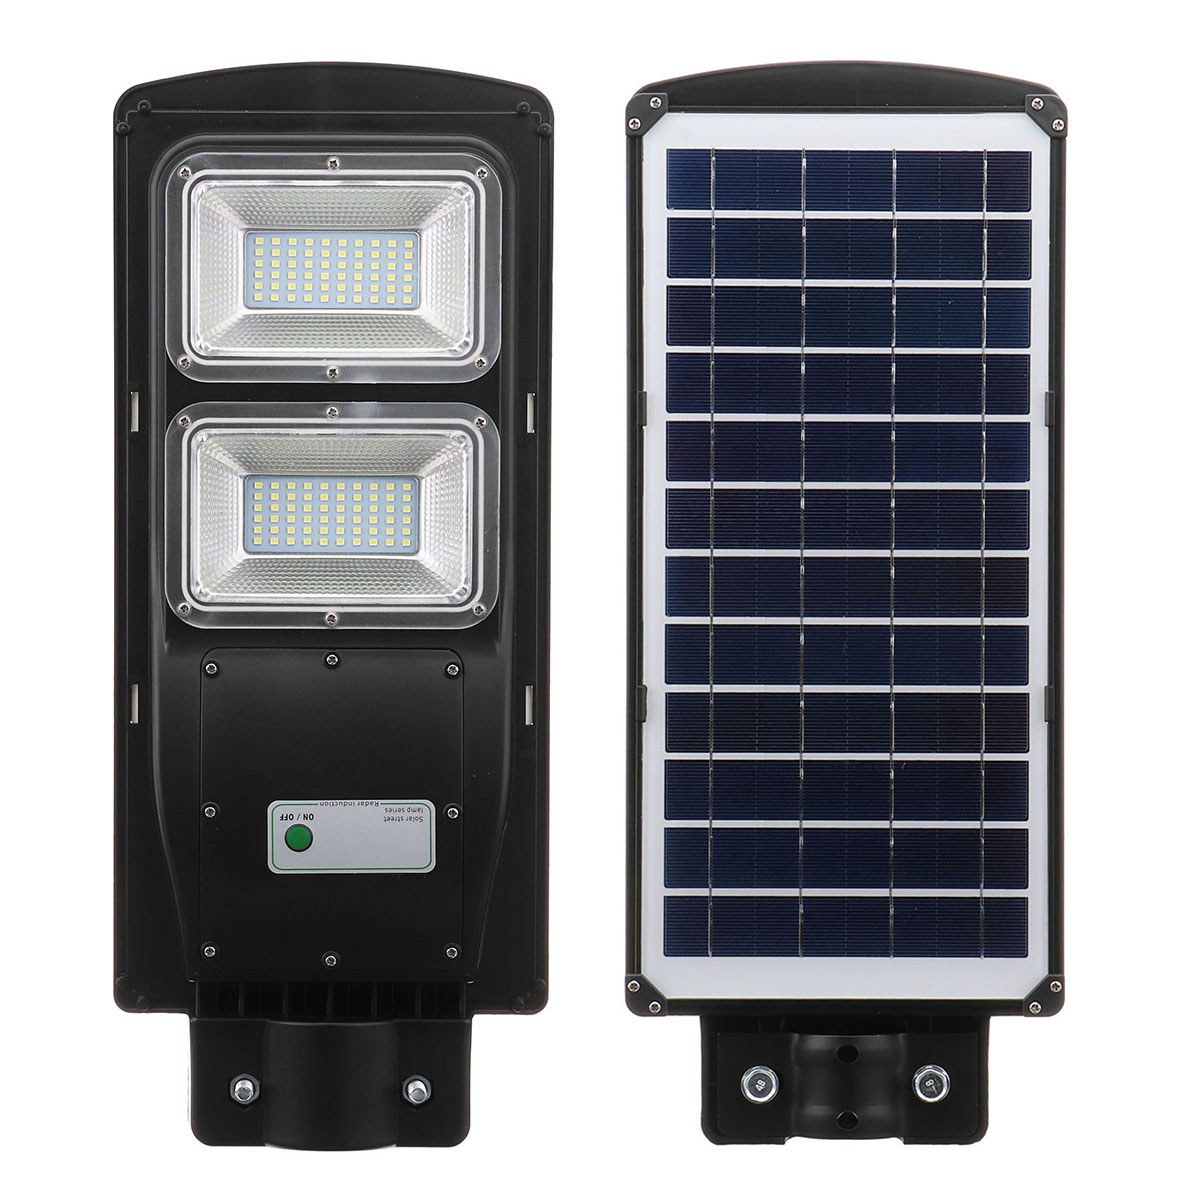 60W LED IP67 Solar Street Light Radar With PIR Motion Sensor Outdoor Lighting Wall Lamps Solar Landscape Garden Lights